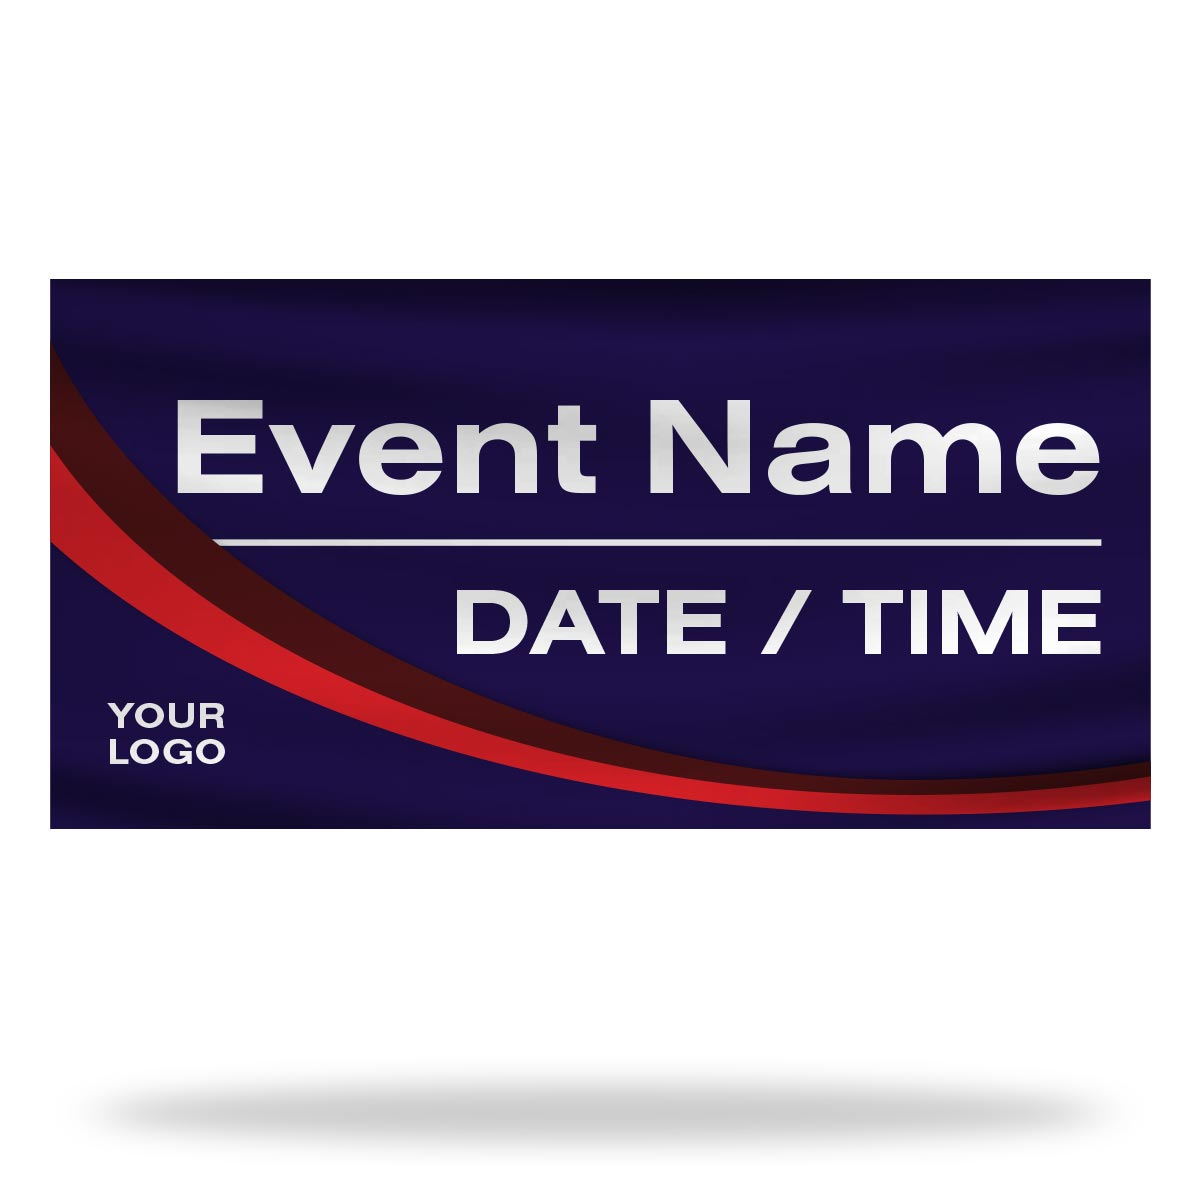 Universal Business Event Flags & Banners Design 02